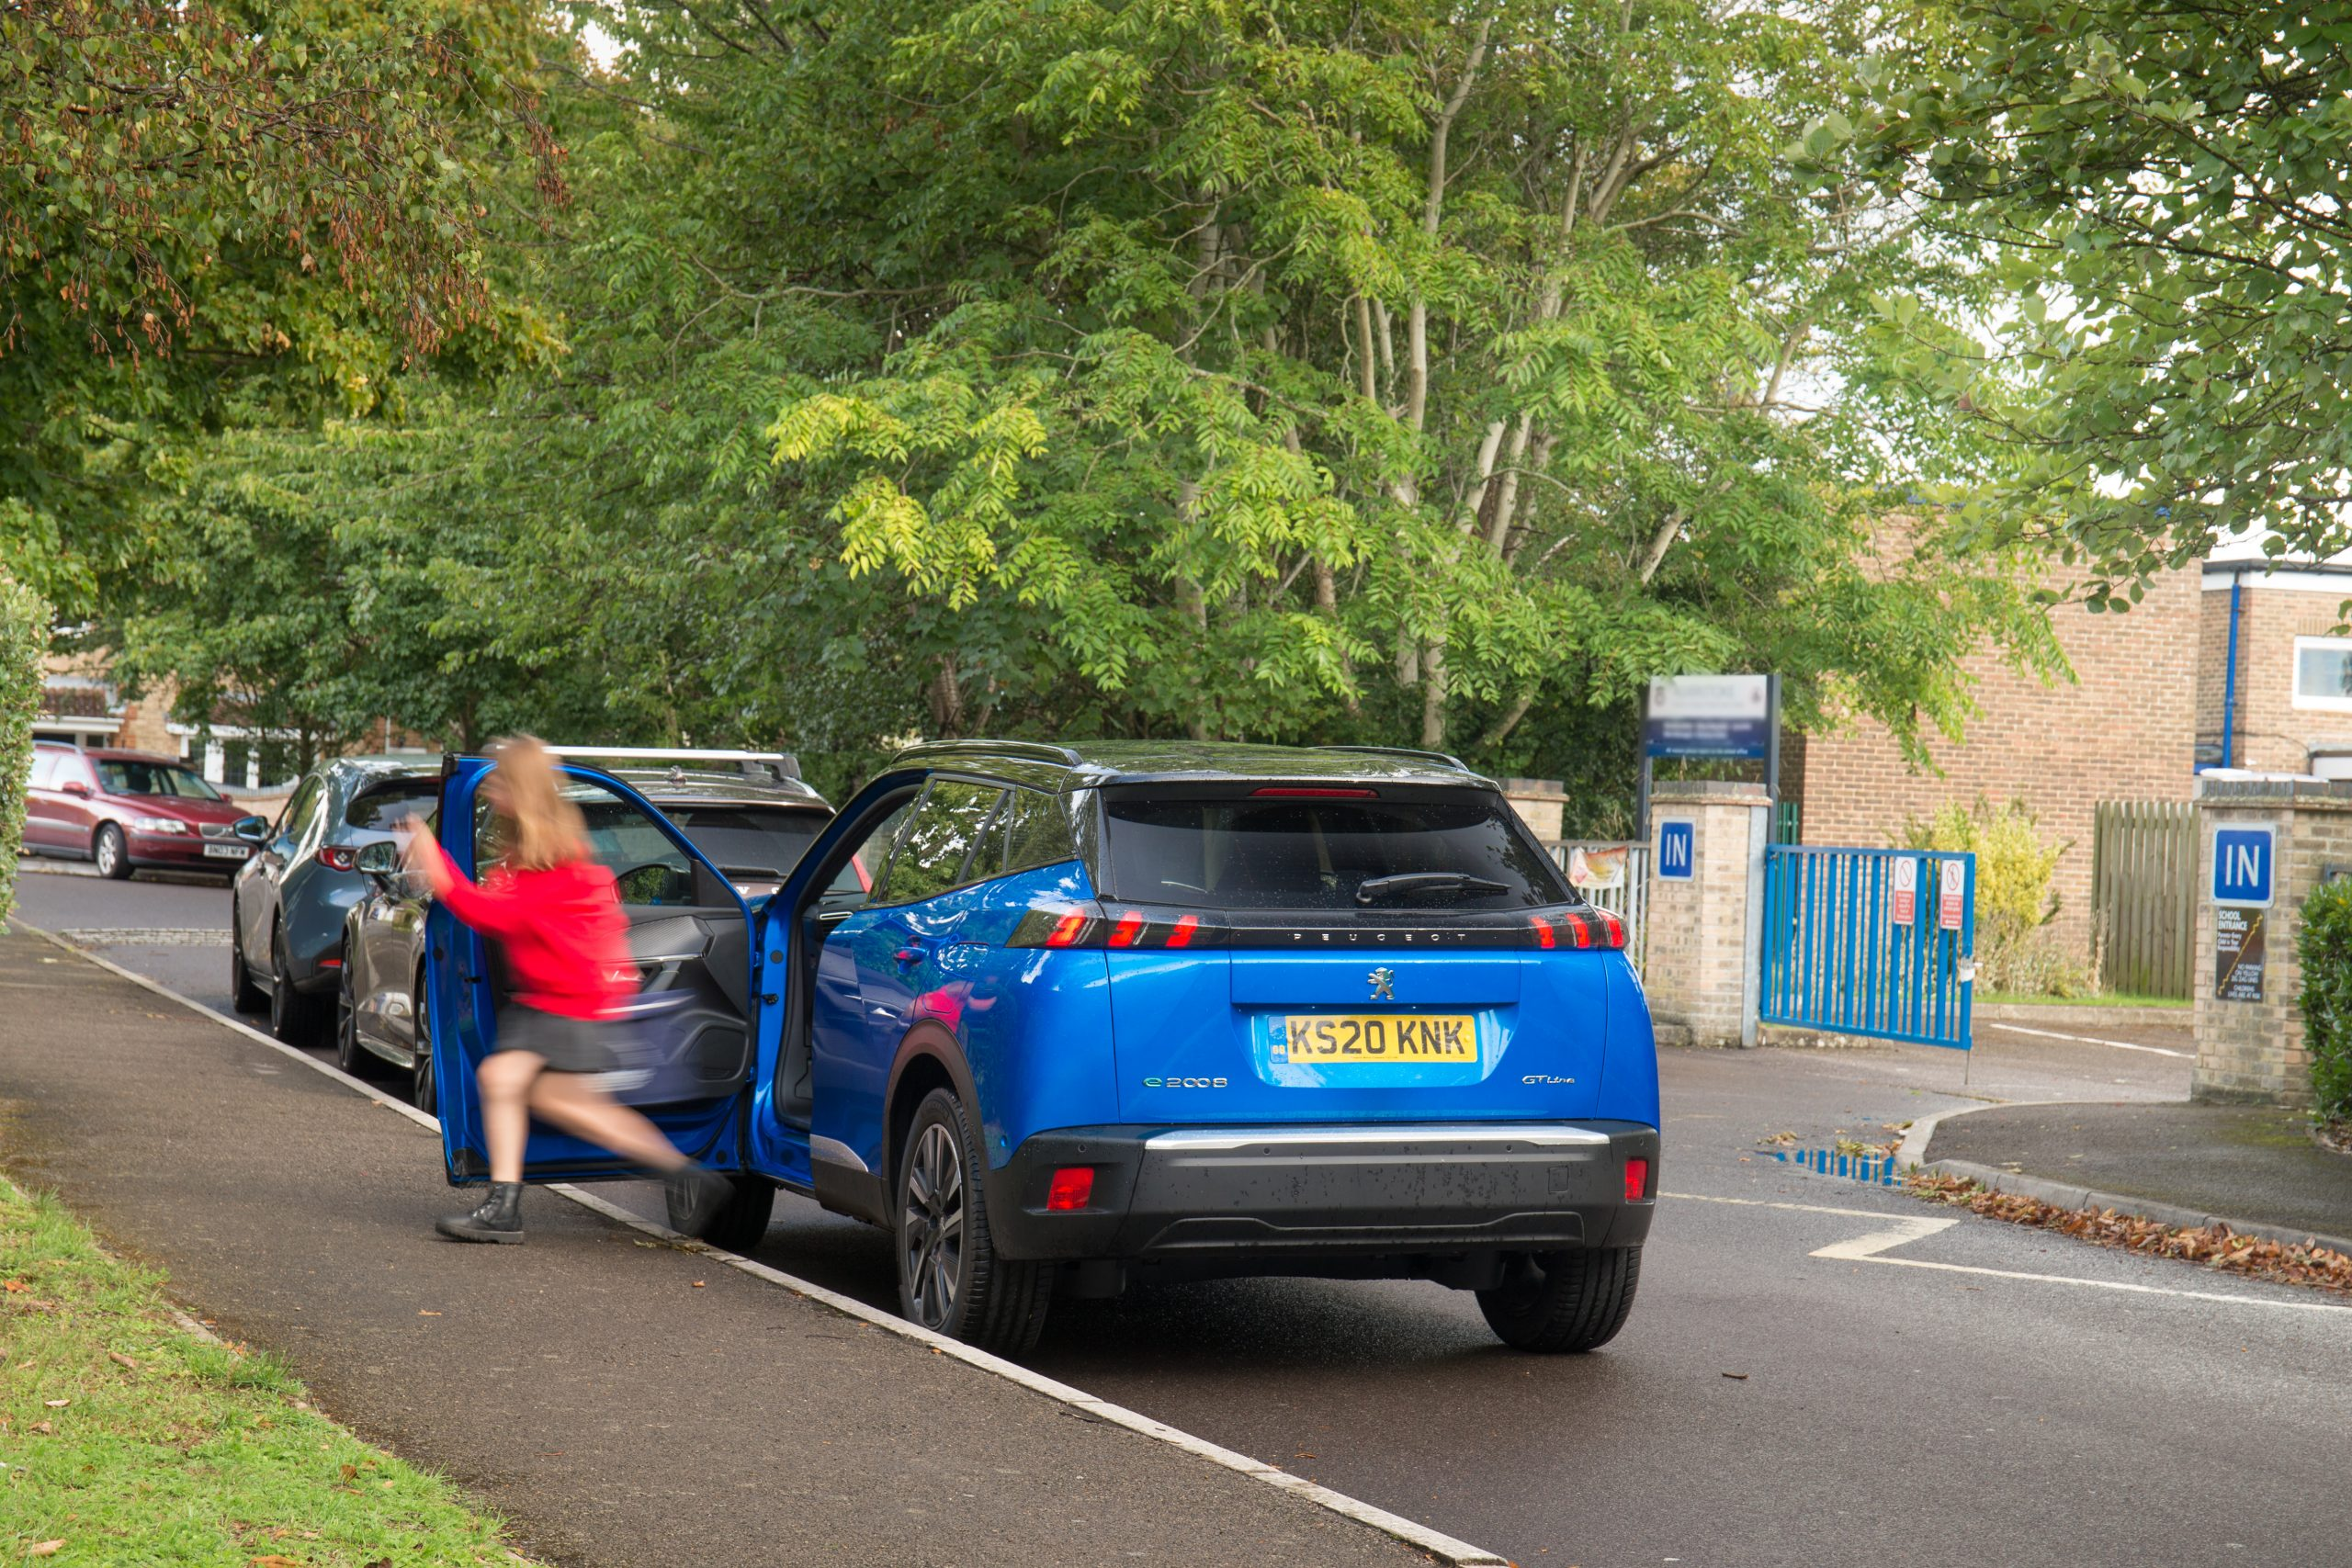 School-run battleground set to get worse as more parents choose to drive